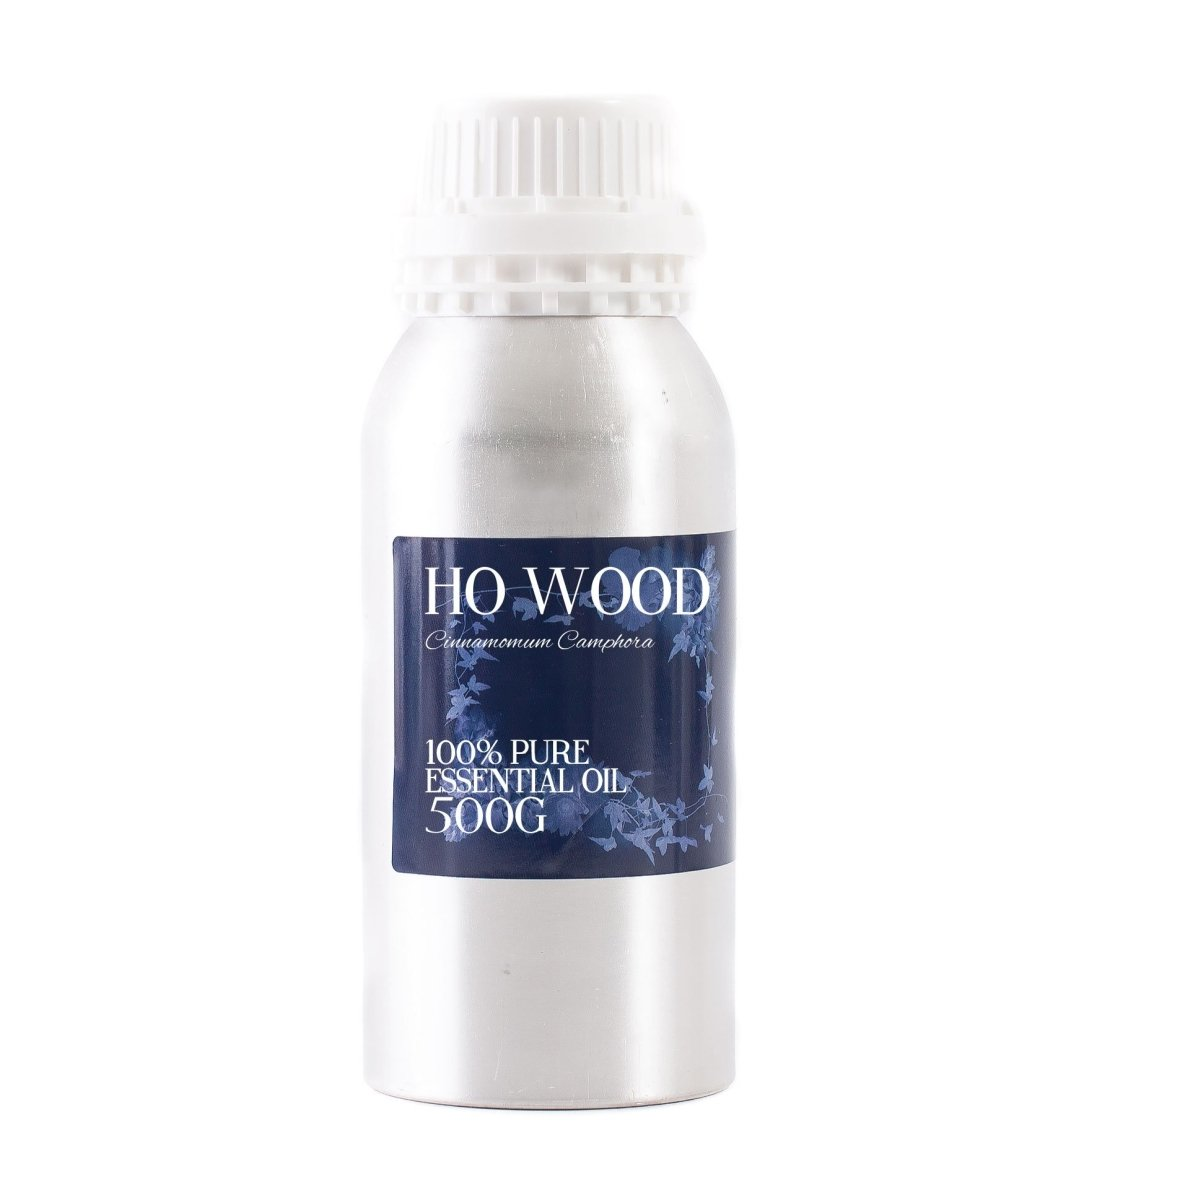 Ho Wood Essential Oil - Mystic Moments UK